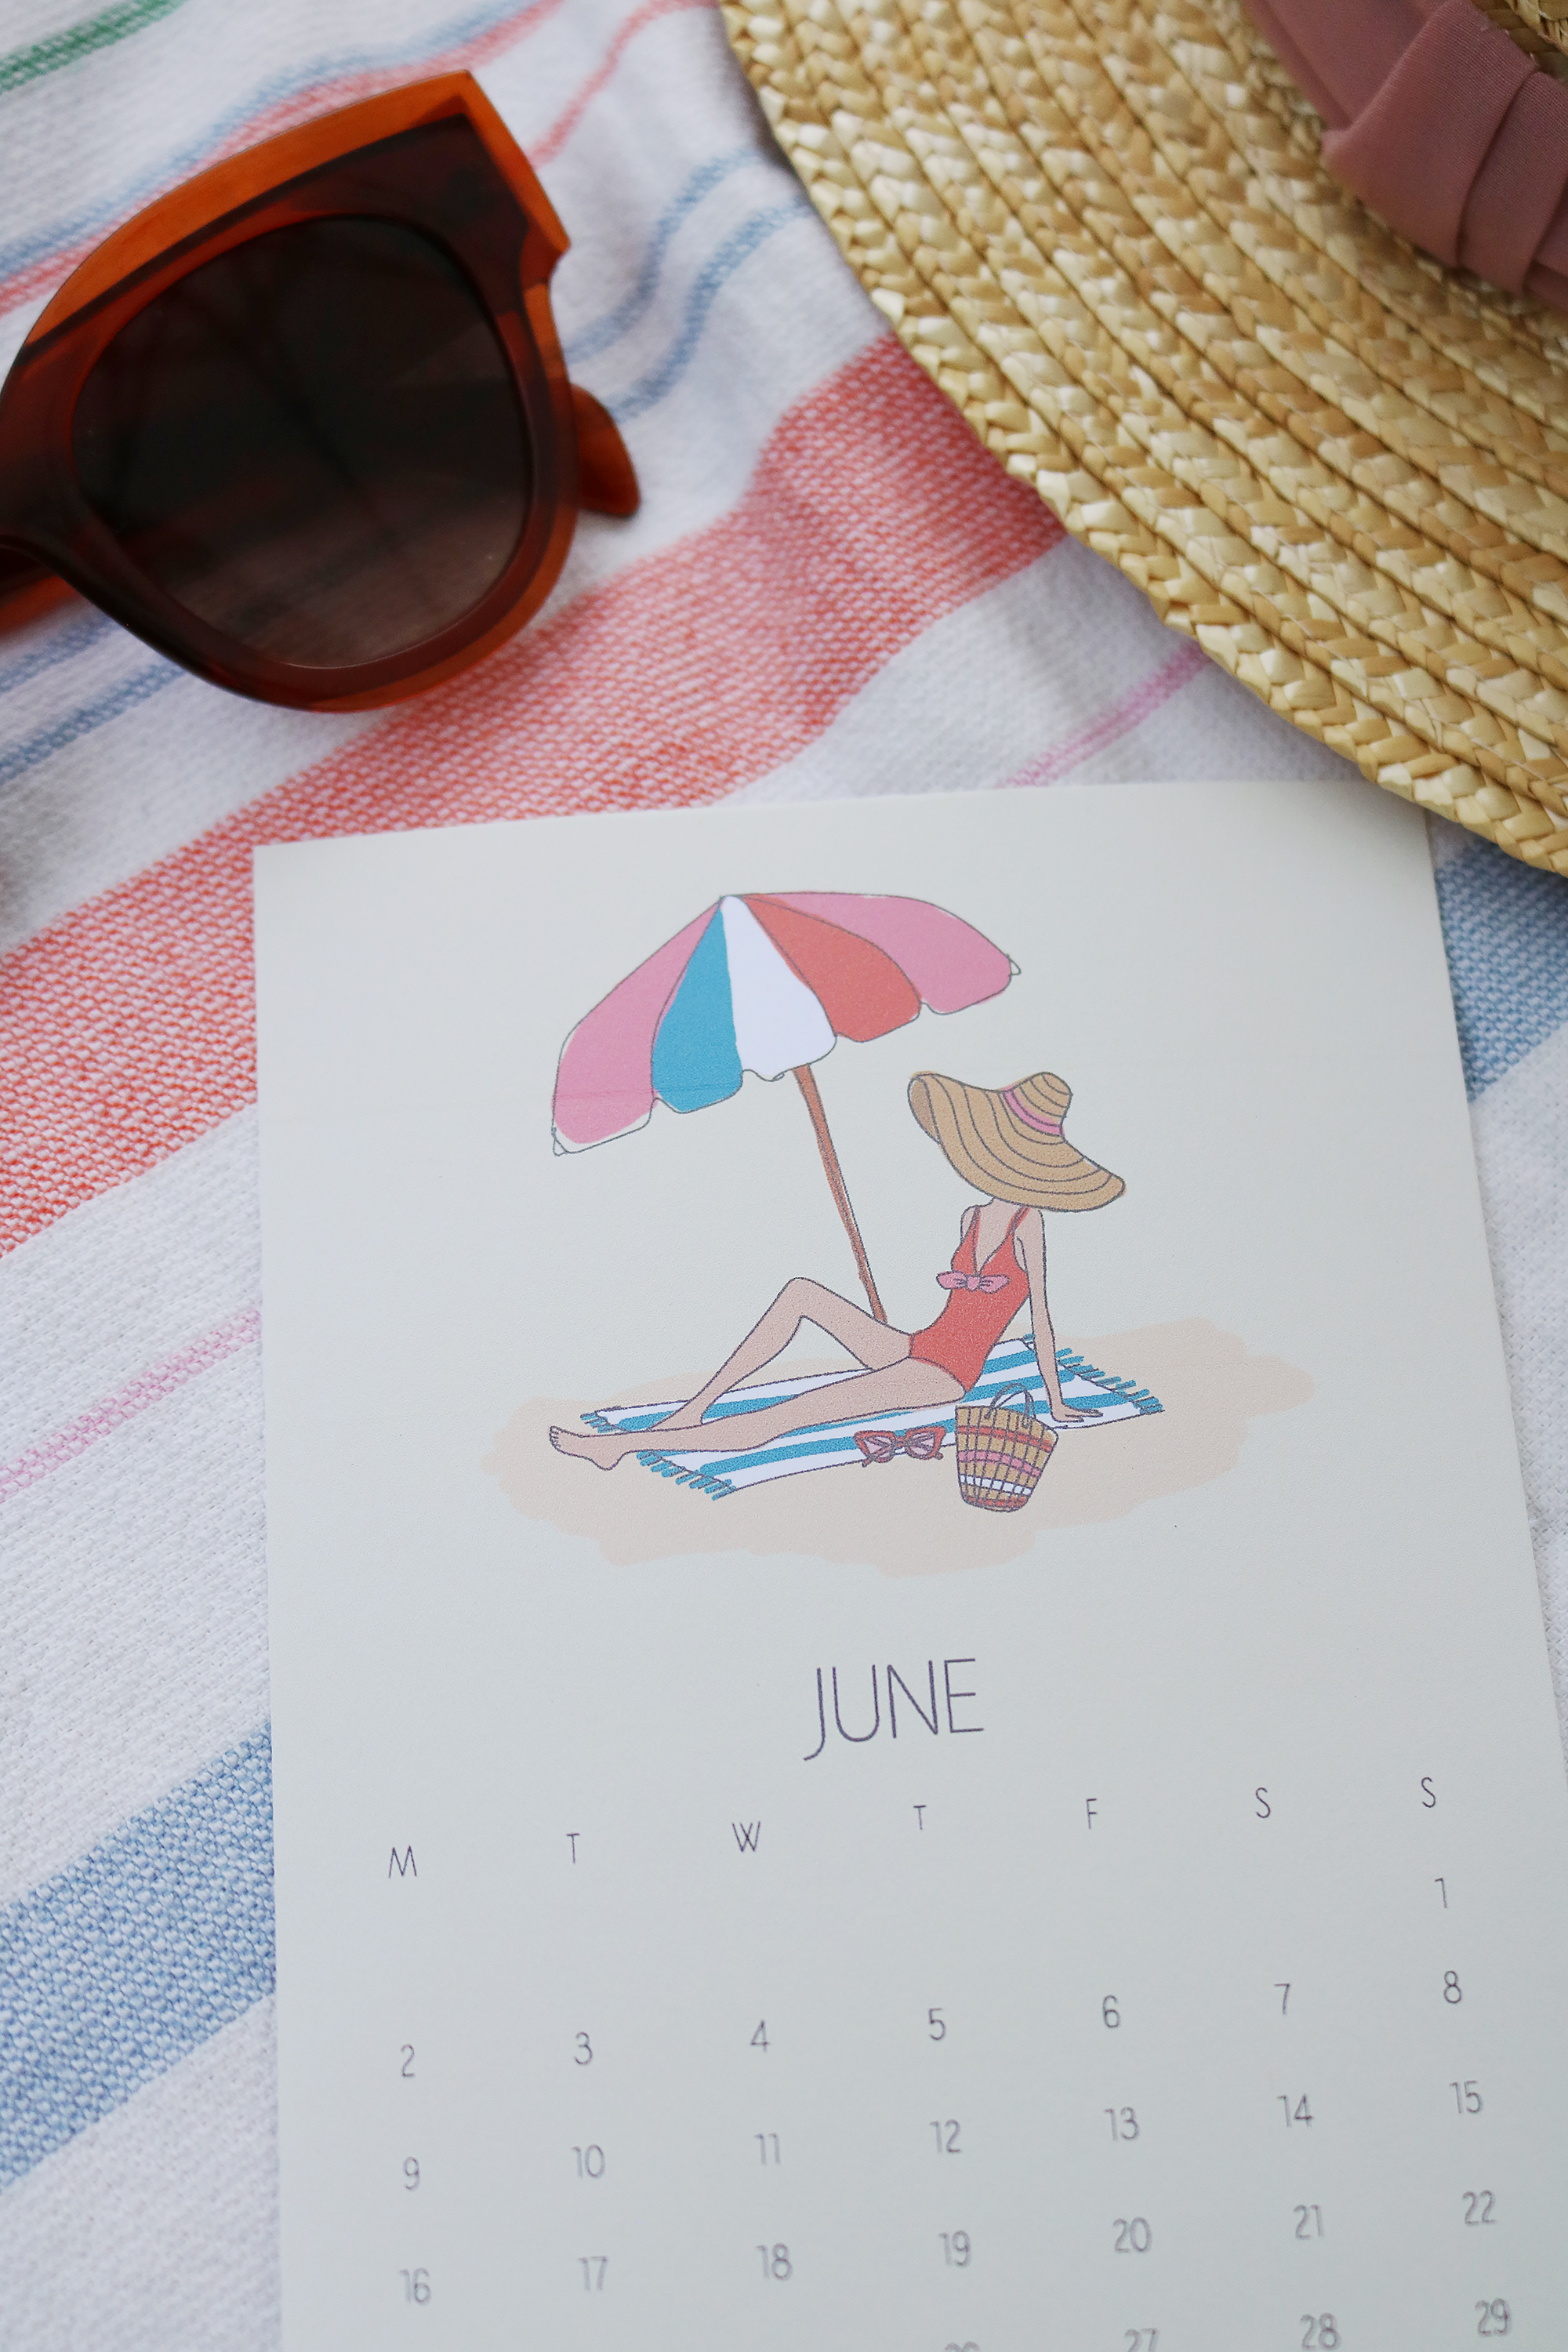 June Calendar is Here!